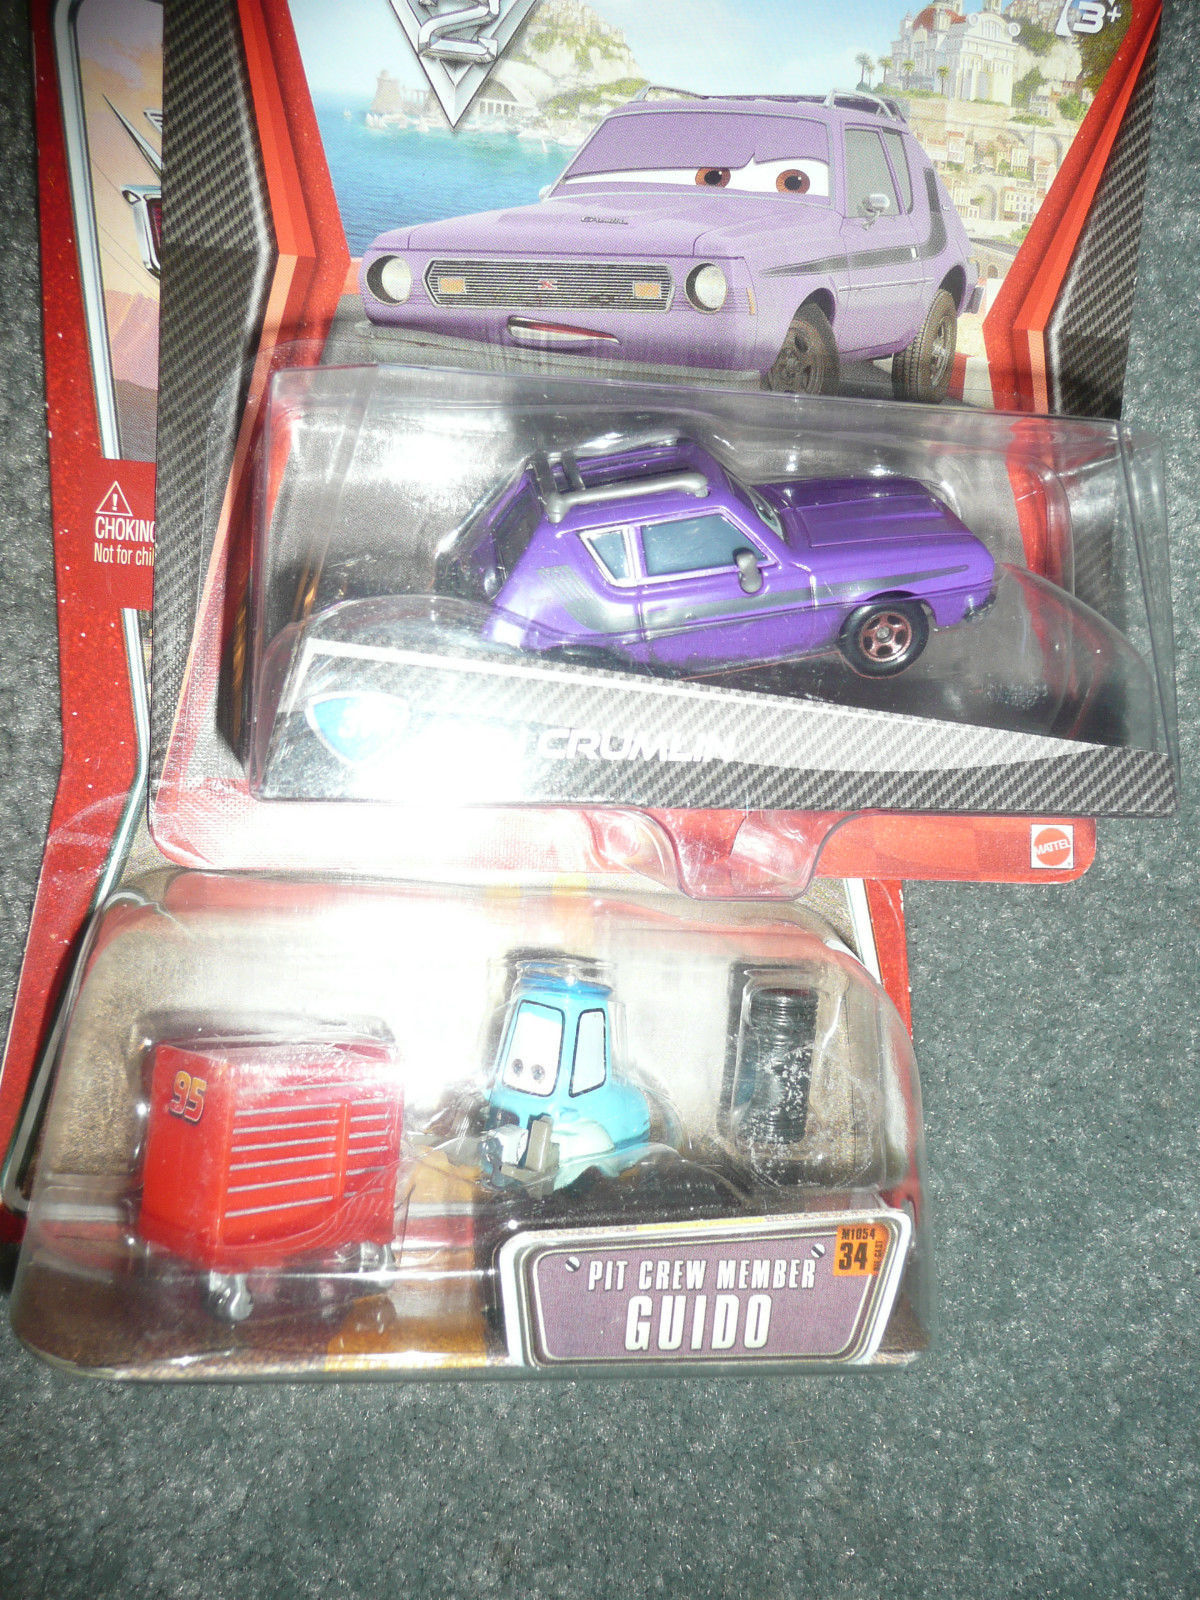 NEW WORLD OF CARS LOT OF 2 GUIDO AND DON CRUMLIN DEAL DISNEY PIXAR CARS CARS 2